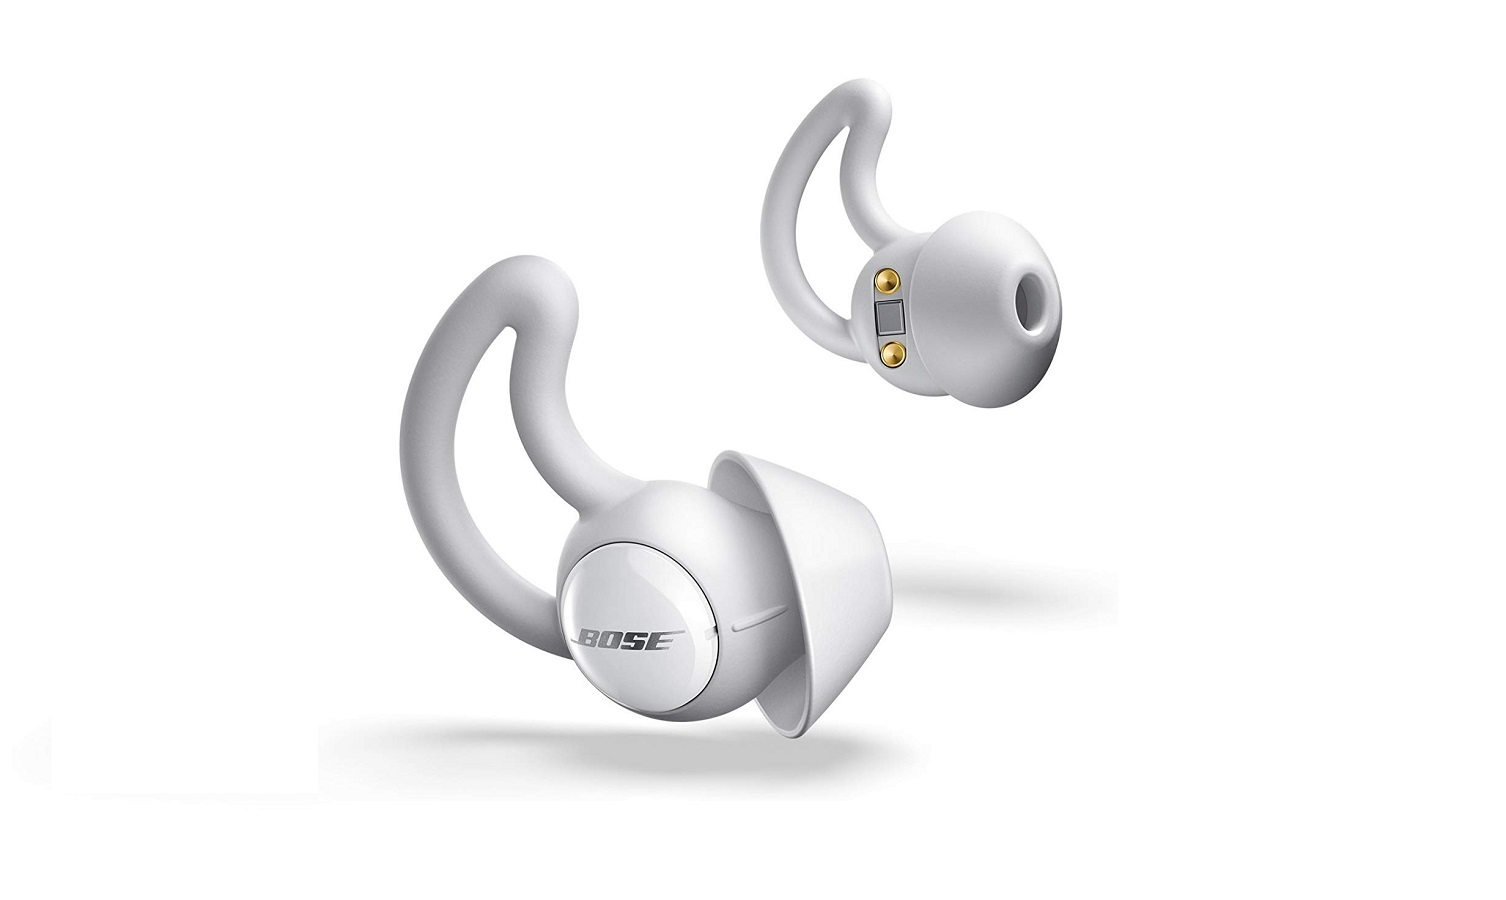 bose noise-masking earbuds on a white background